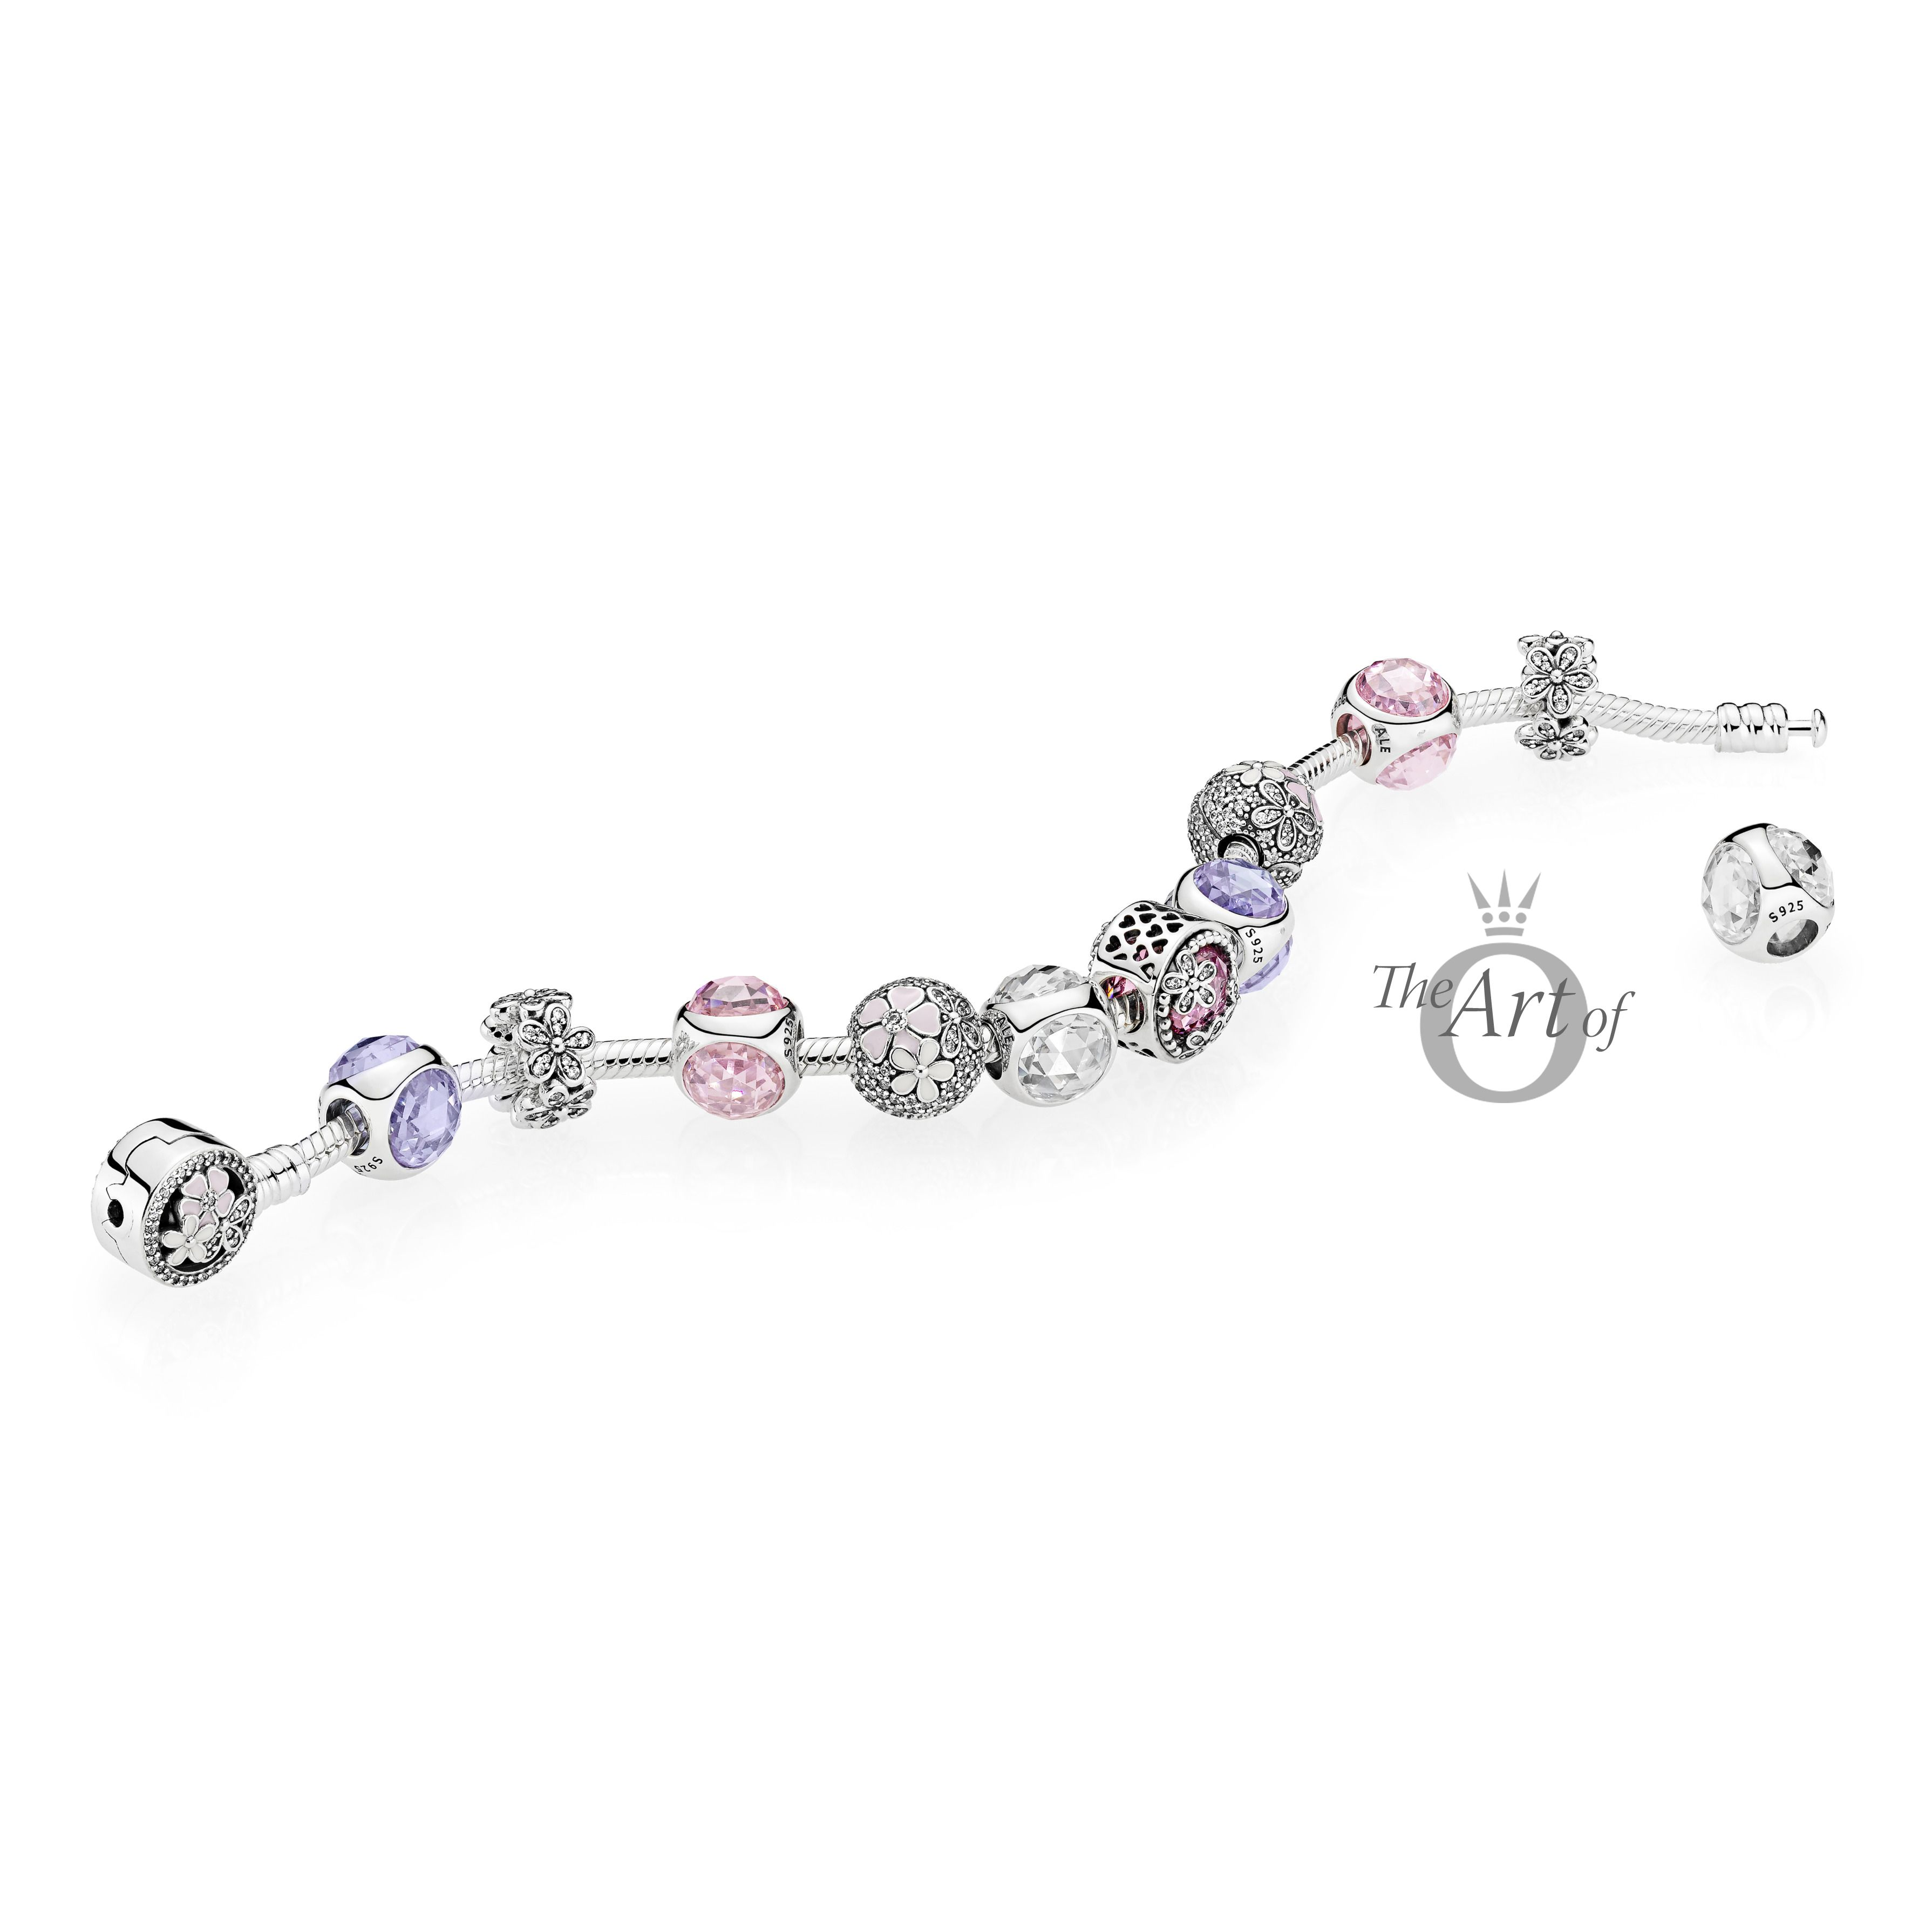 Pandora Spring Collection Preview Update